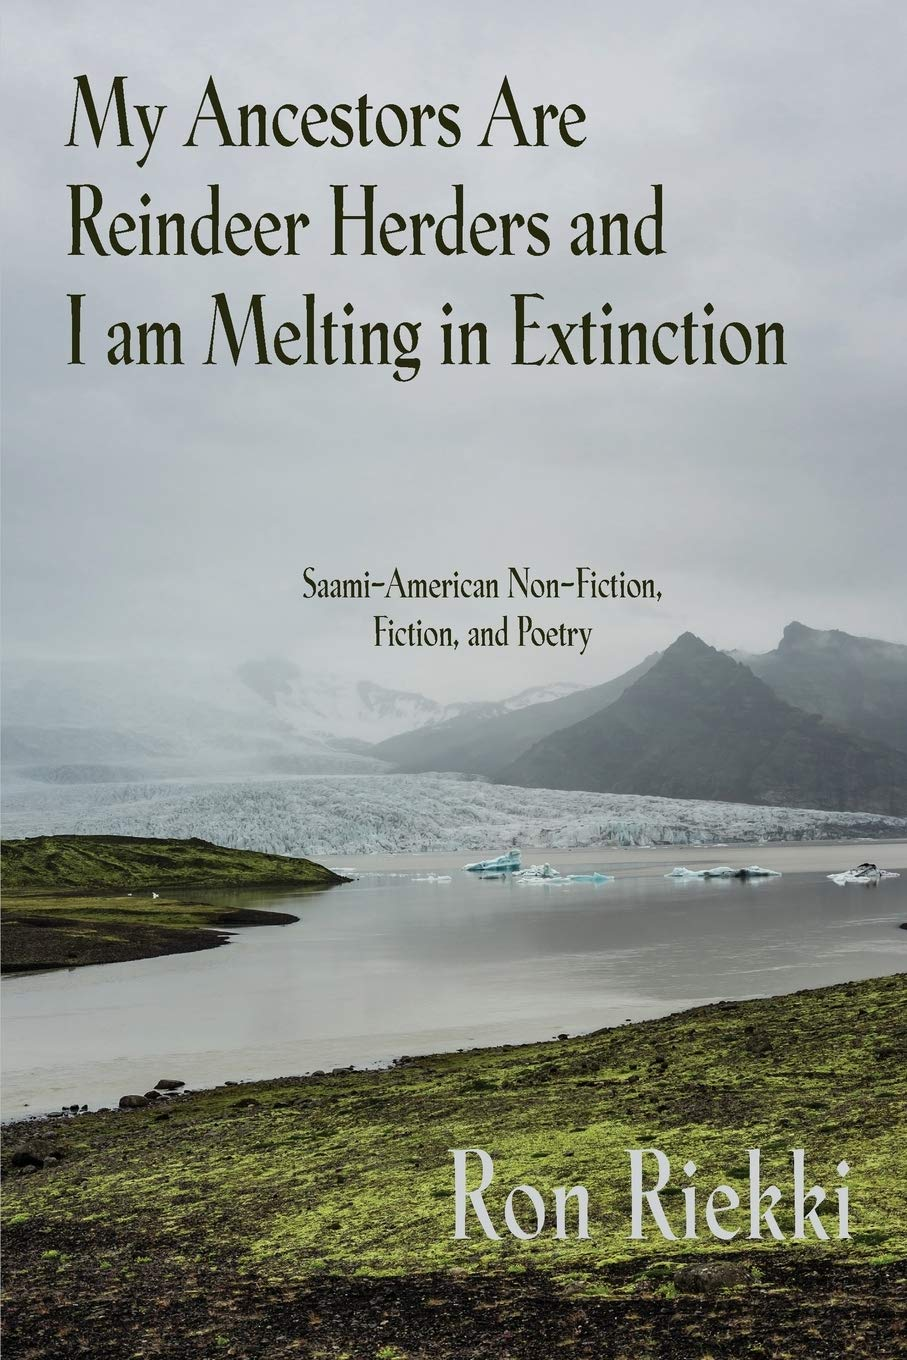 My Ancestors Are Reindeer Herders and I Am Melting In ...